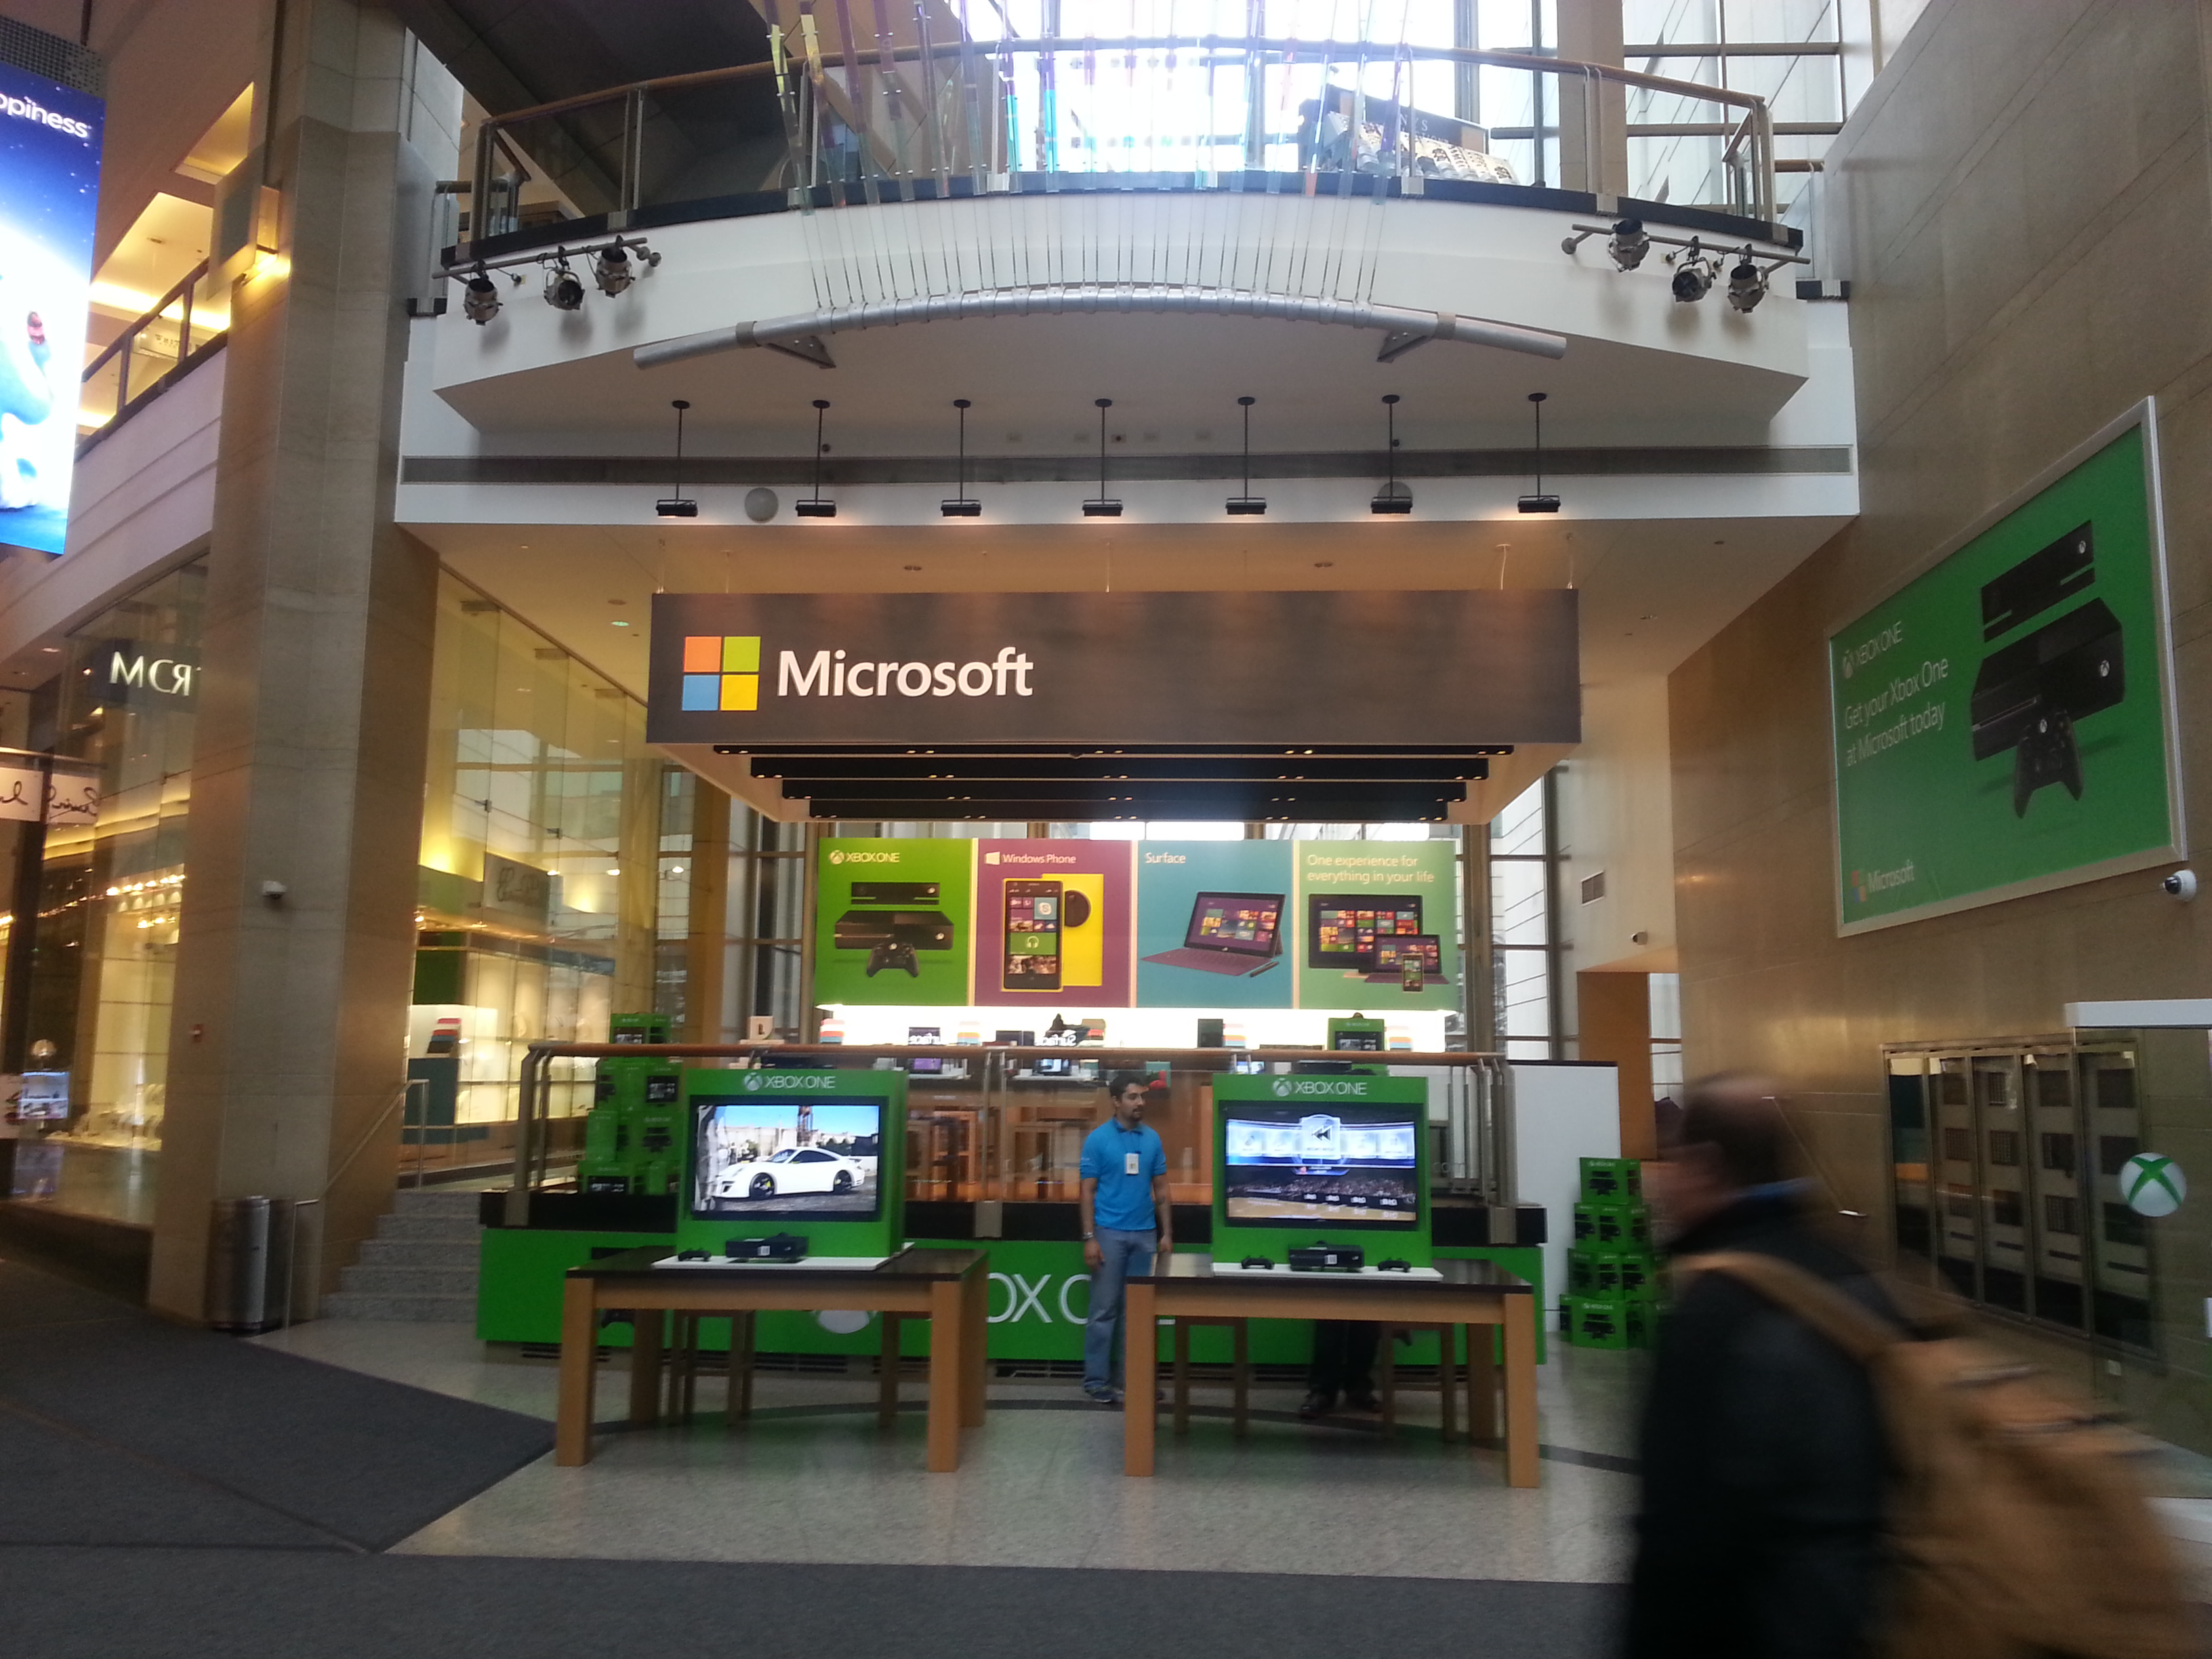 Microsoft stores cross channel showrooming and the value of physical